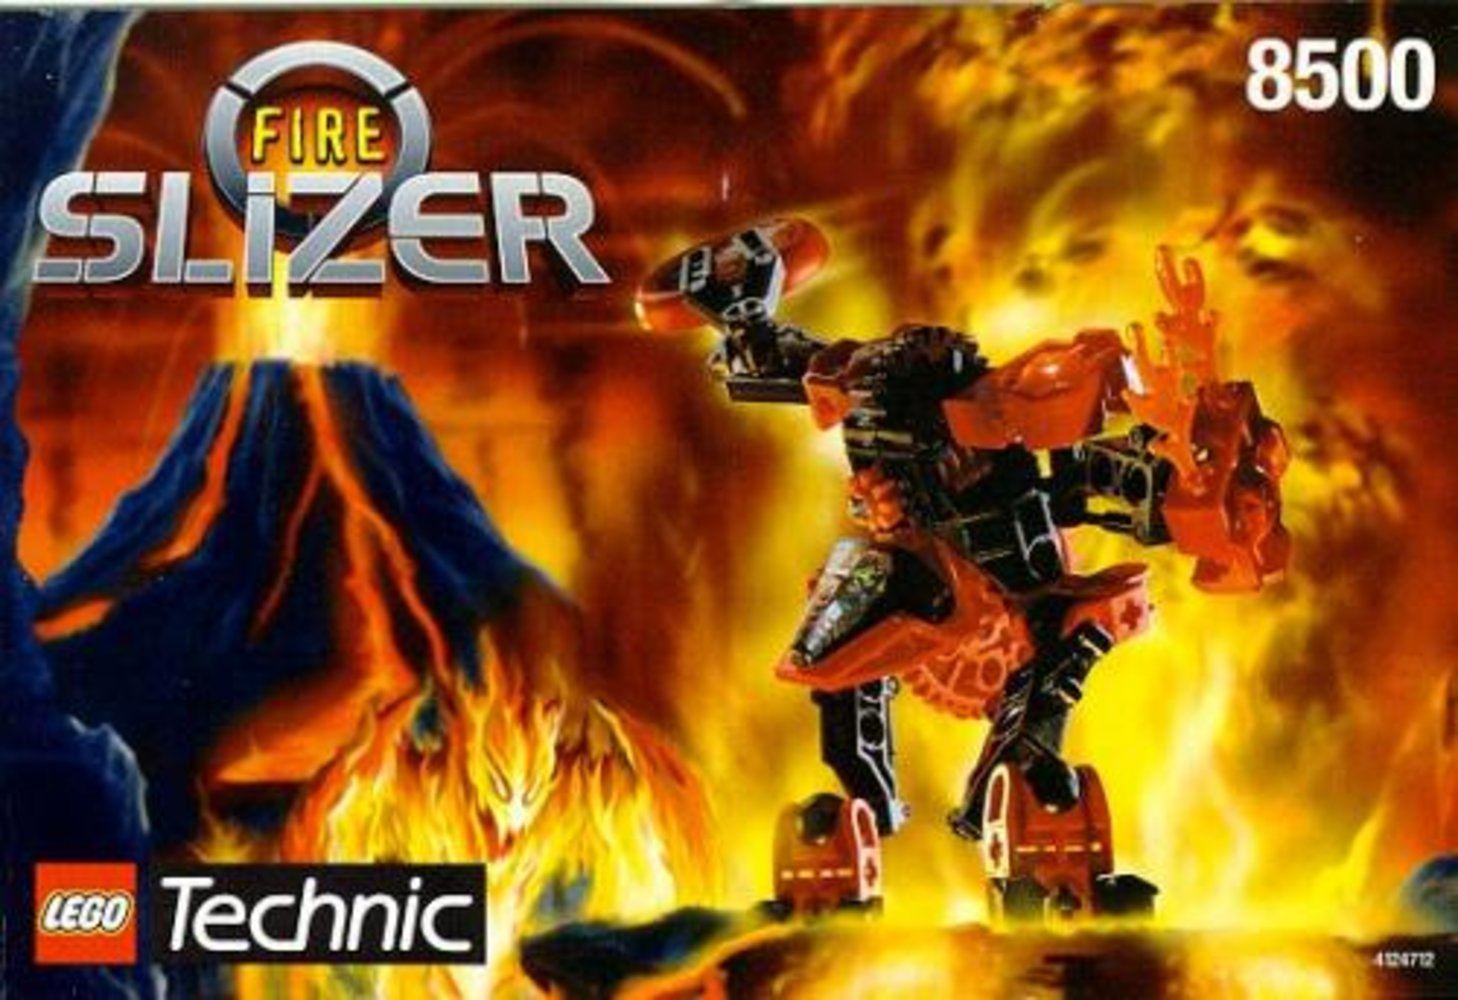 Torch / Fire Slizer